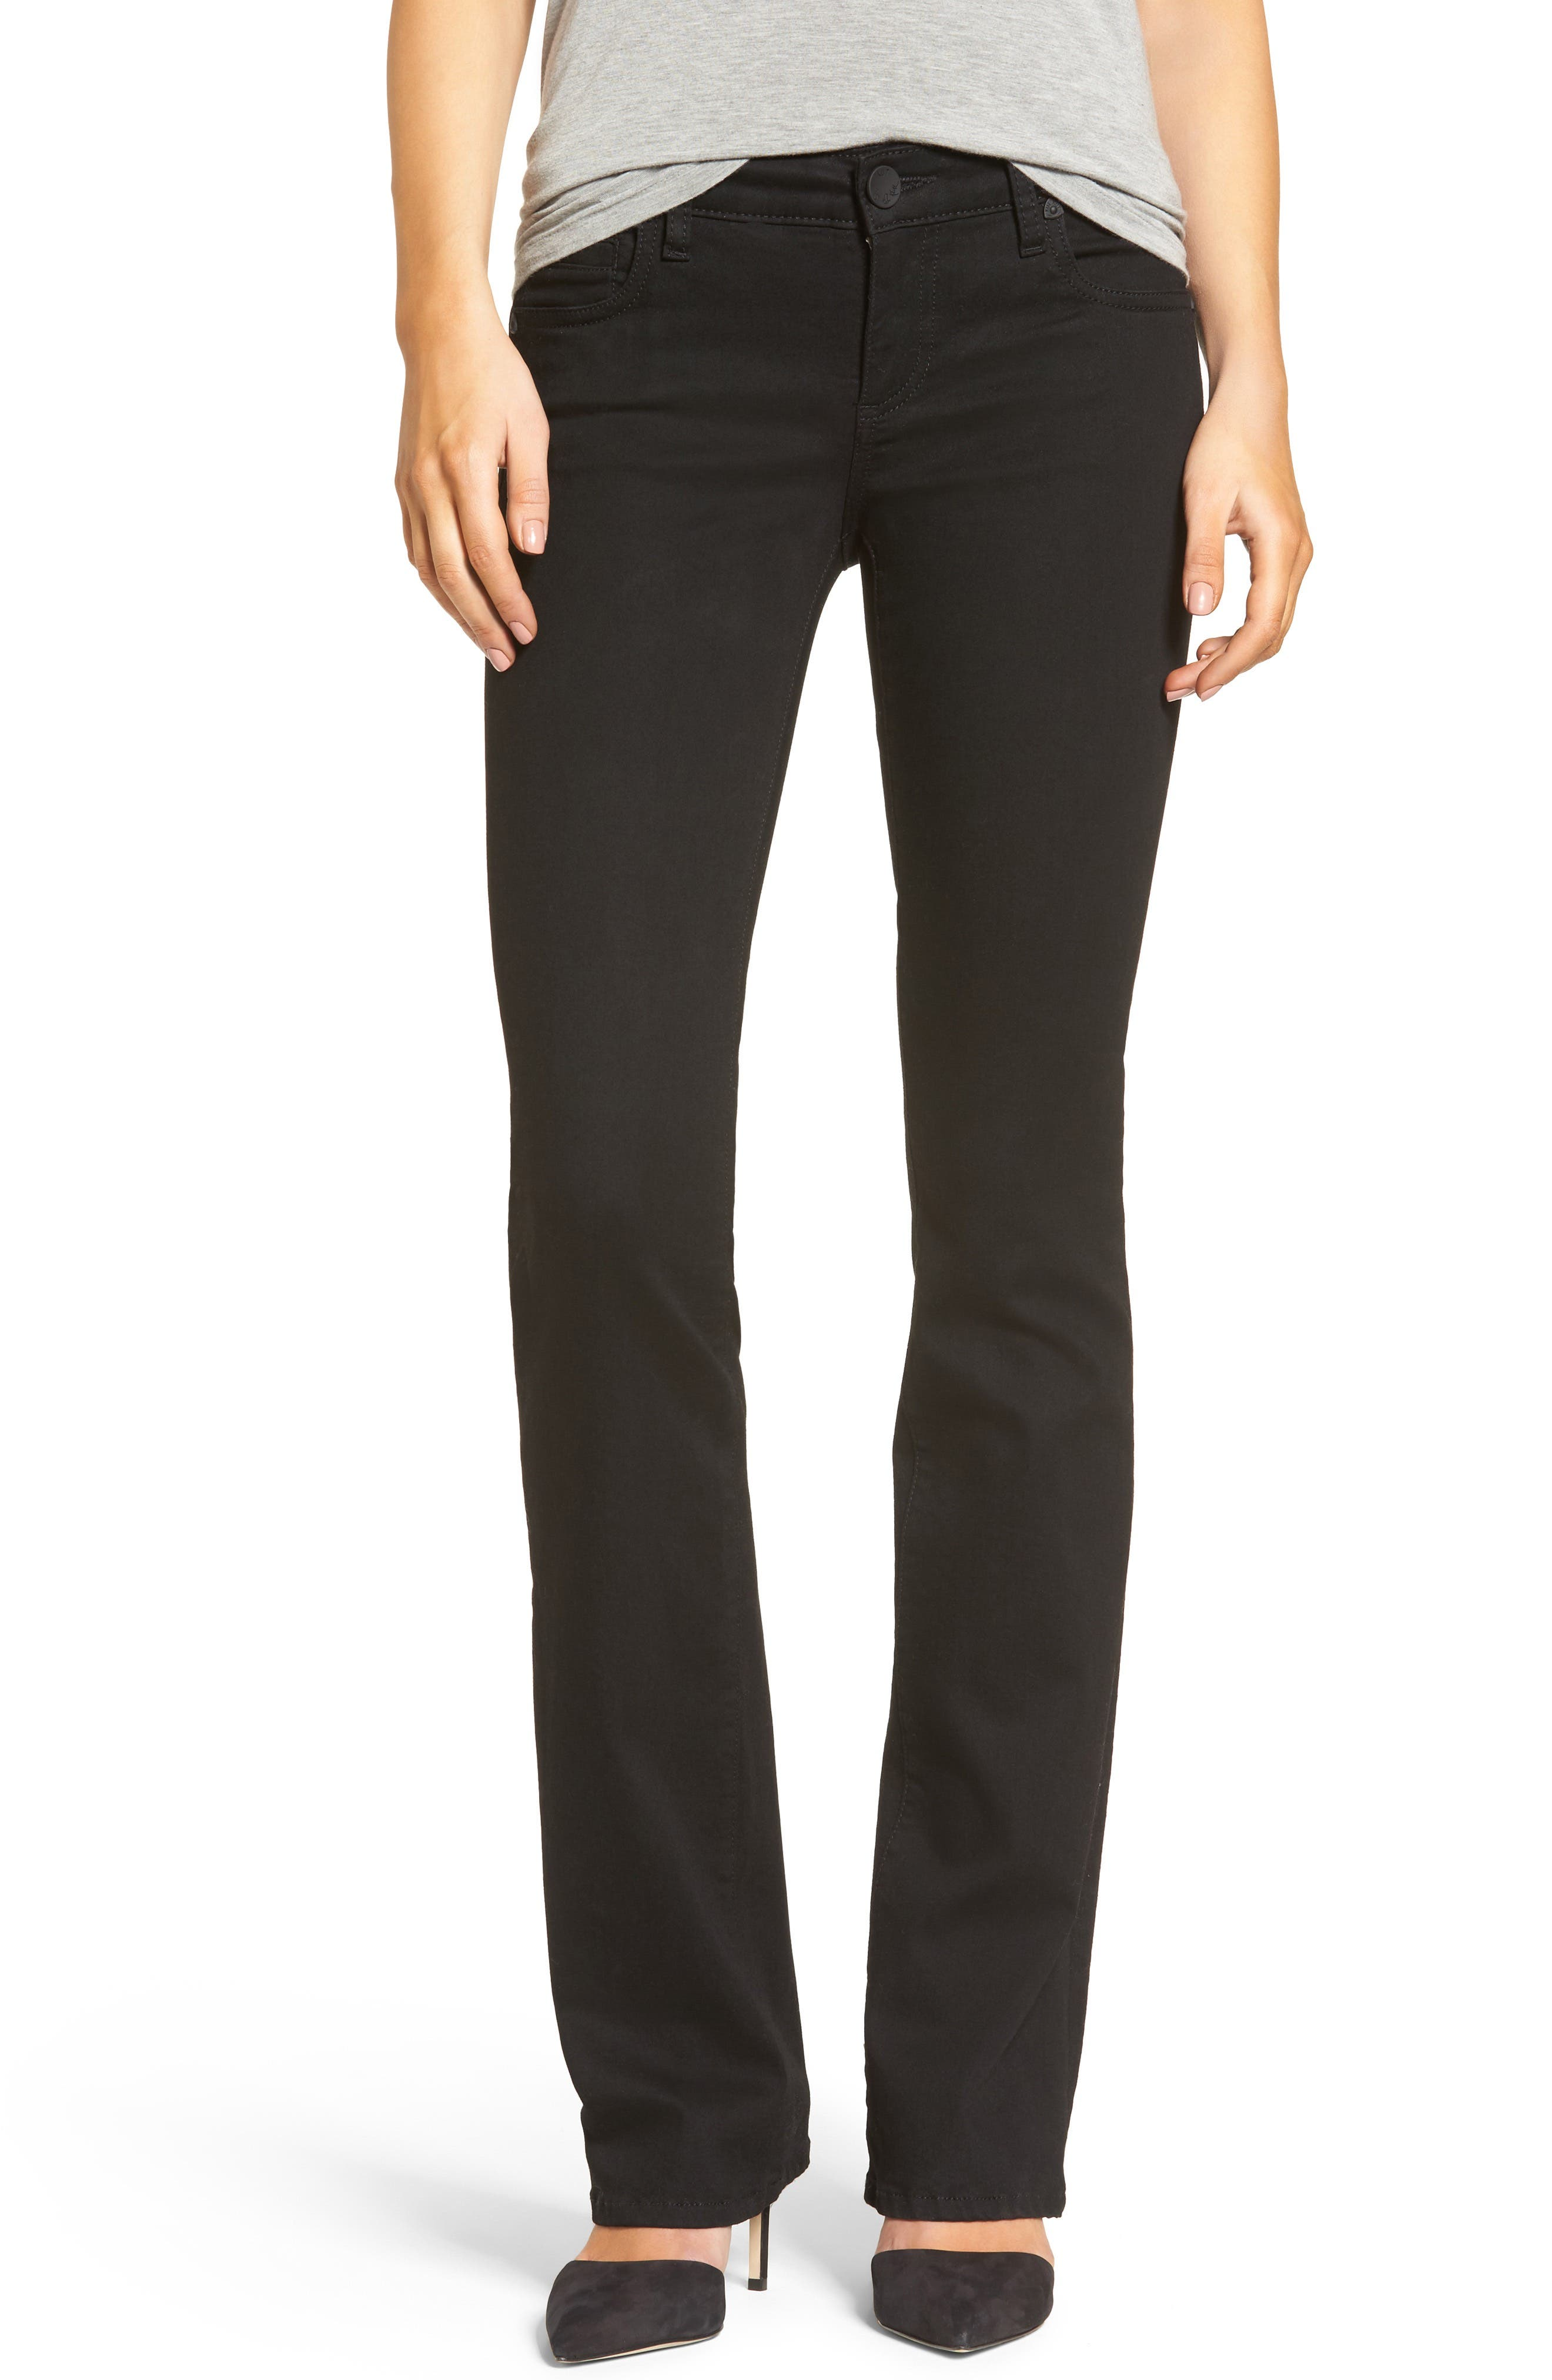 Alternate Image 1 Selected - KUT from the Kloth Natalie Stretch Bootleg Jeans (Regular & Petite)